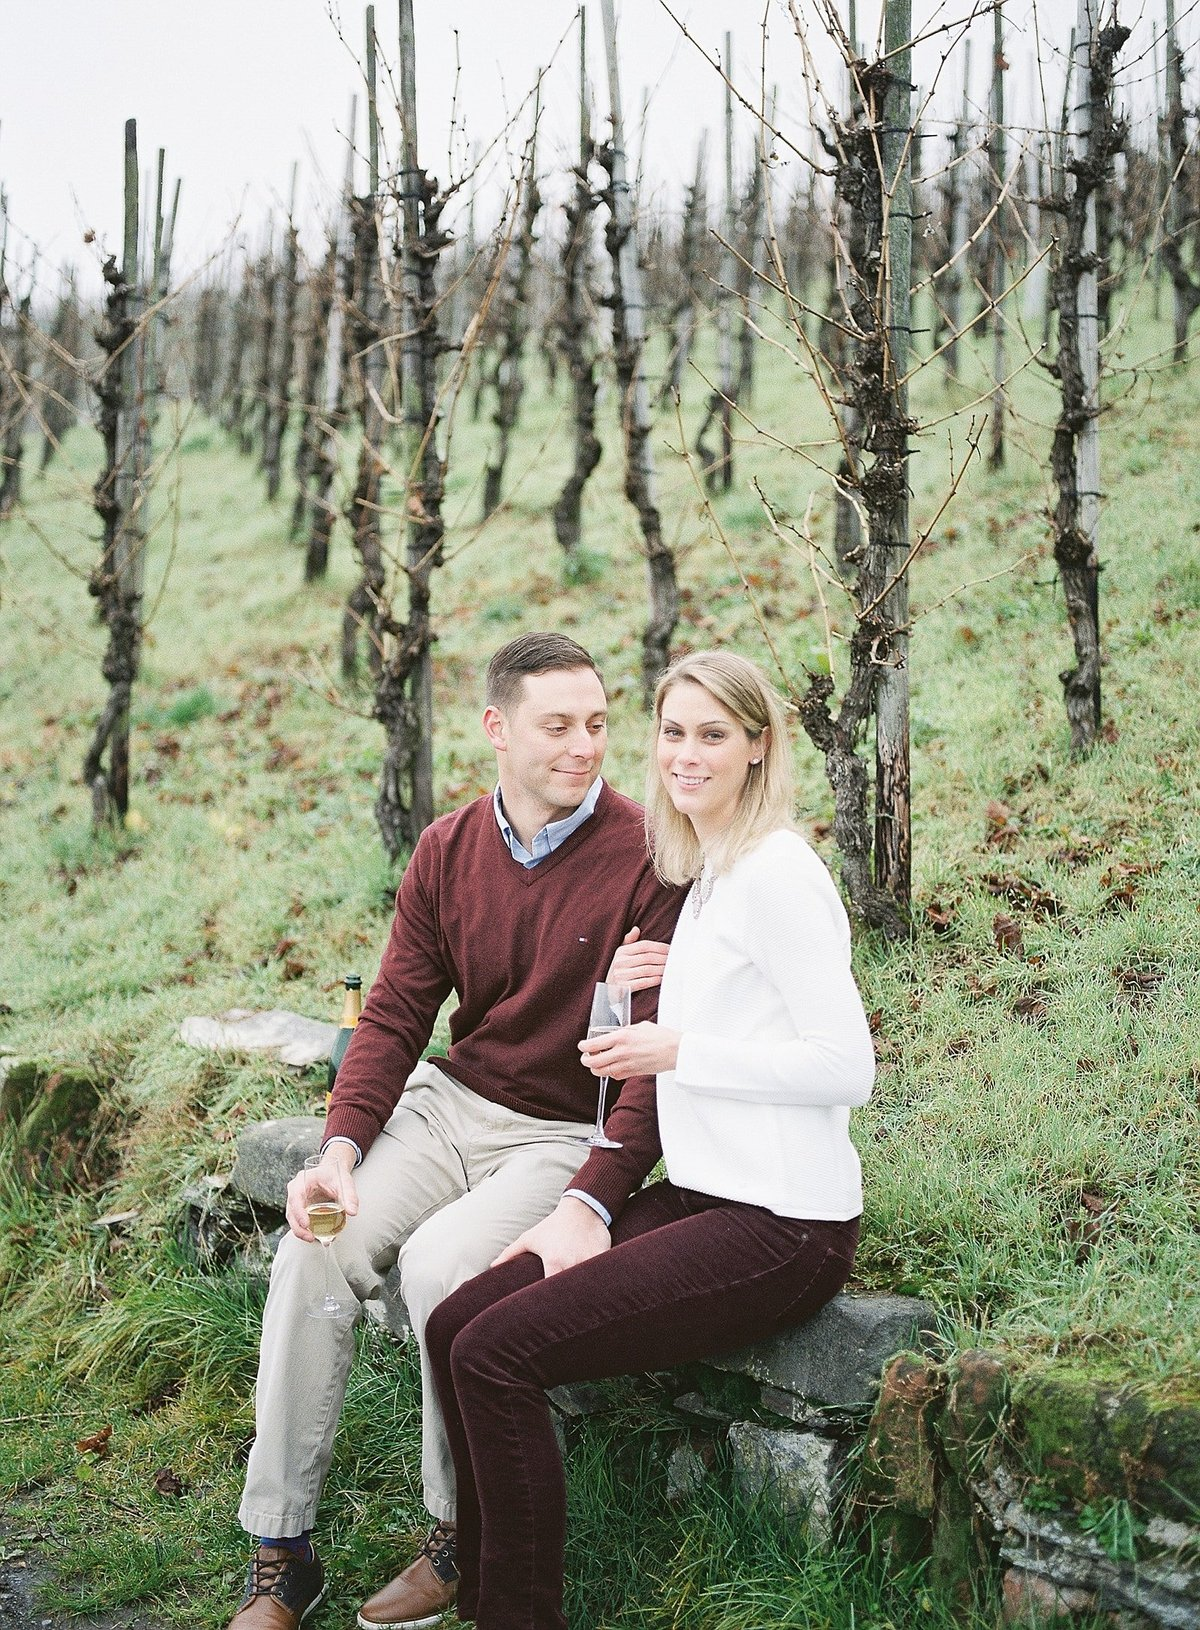 vineyard-engagement-session-germany-film-alicia-yarrish-photography_0006